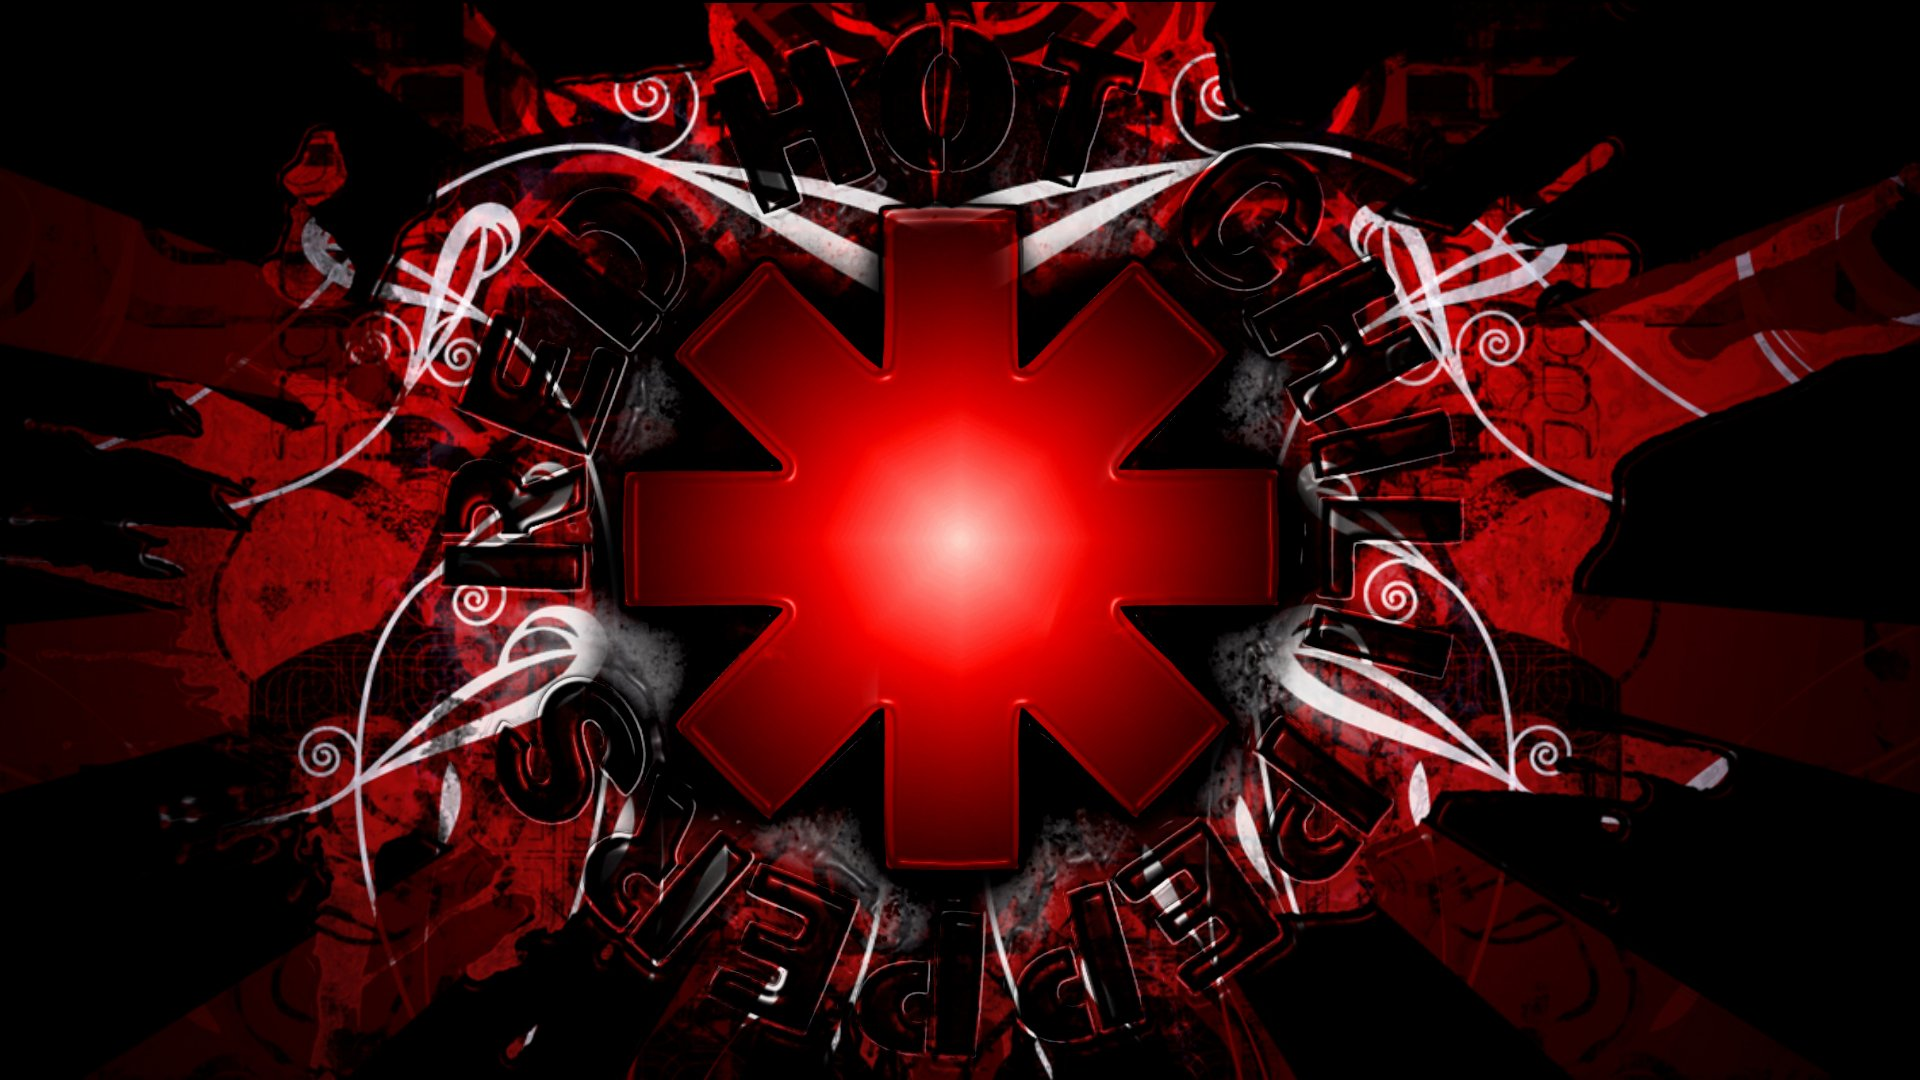 Red Hot Chili Peppers HD Wallpaper Background Image 1920x1080 1920x1080